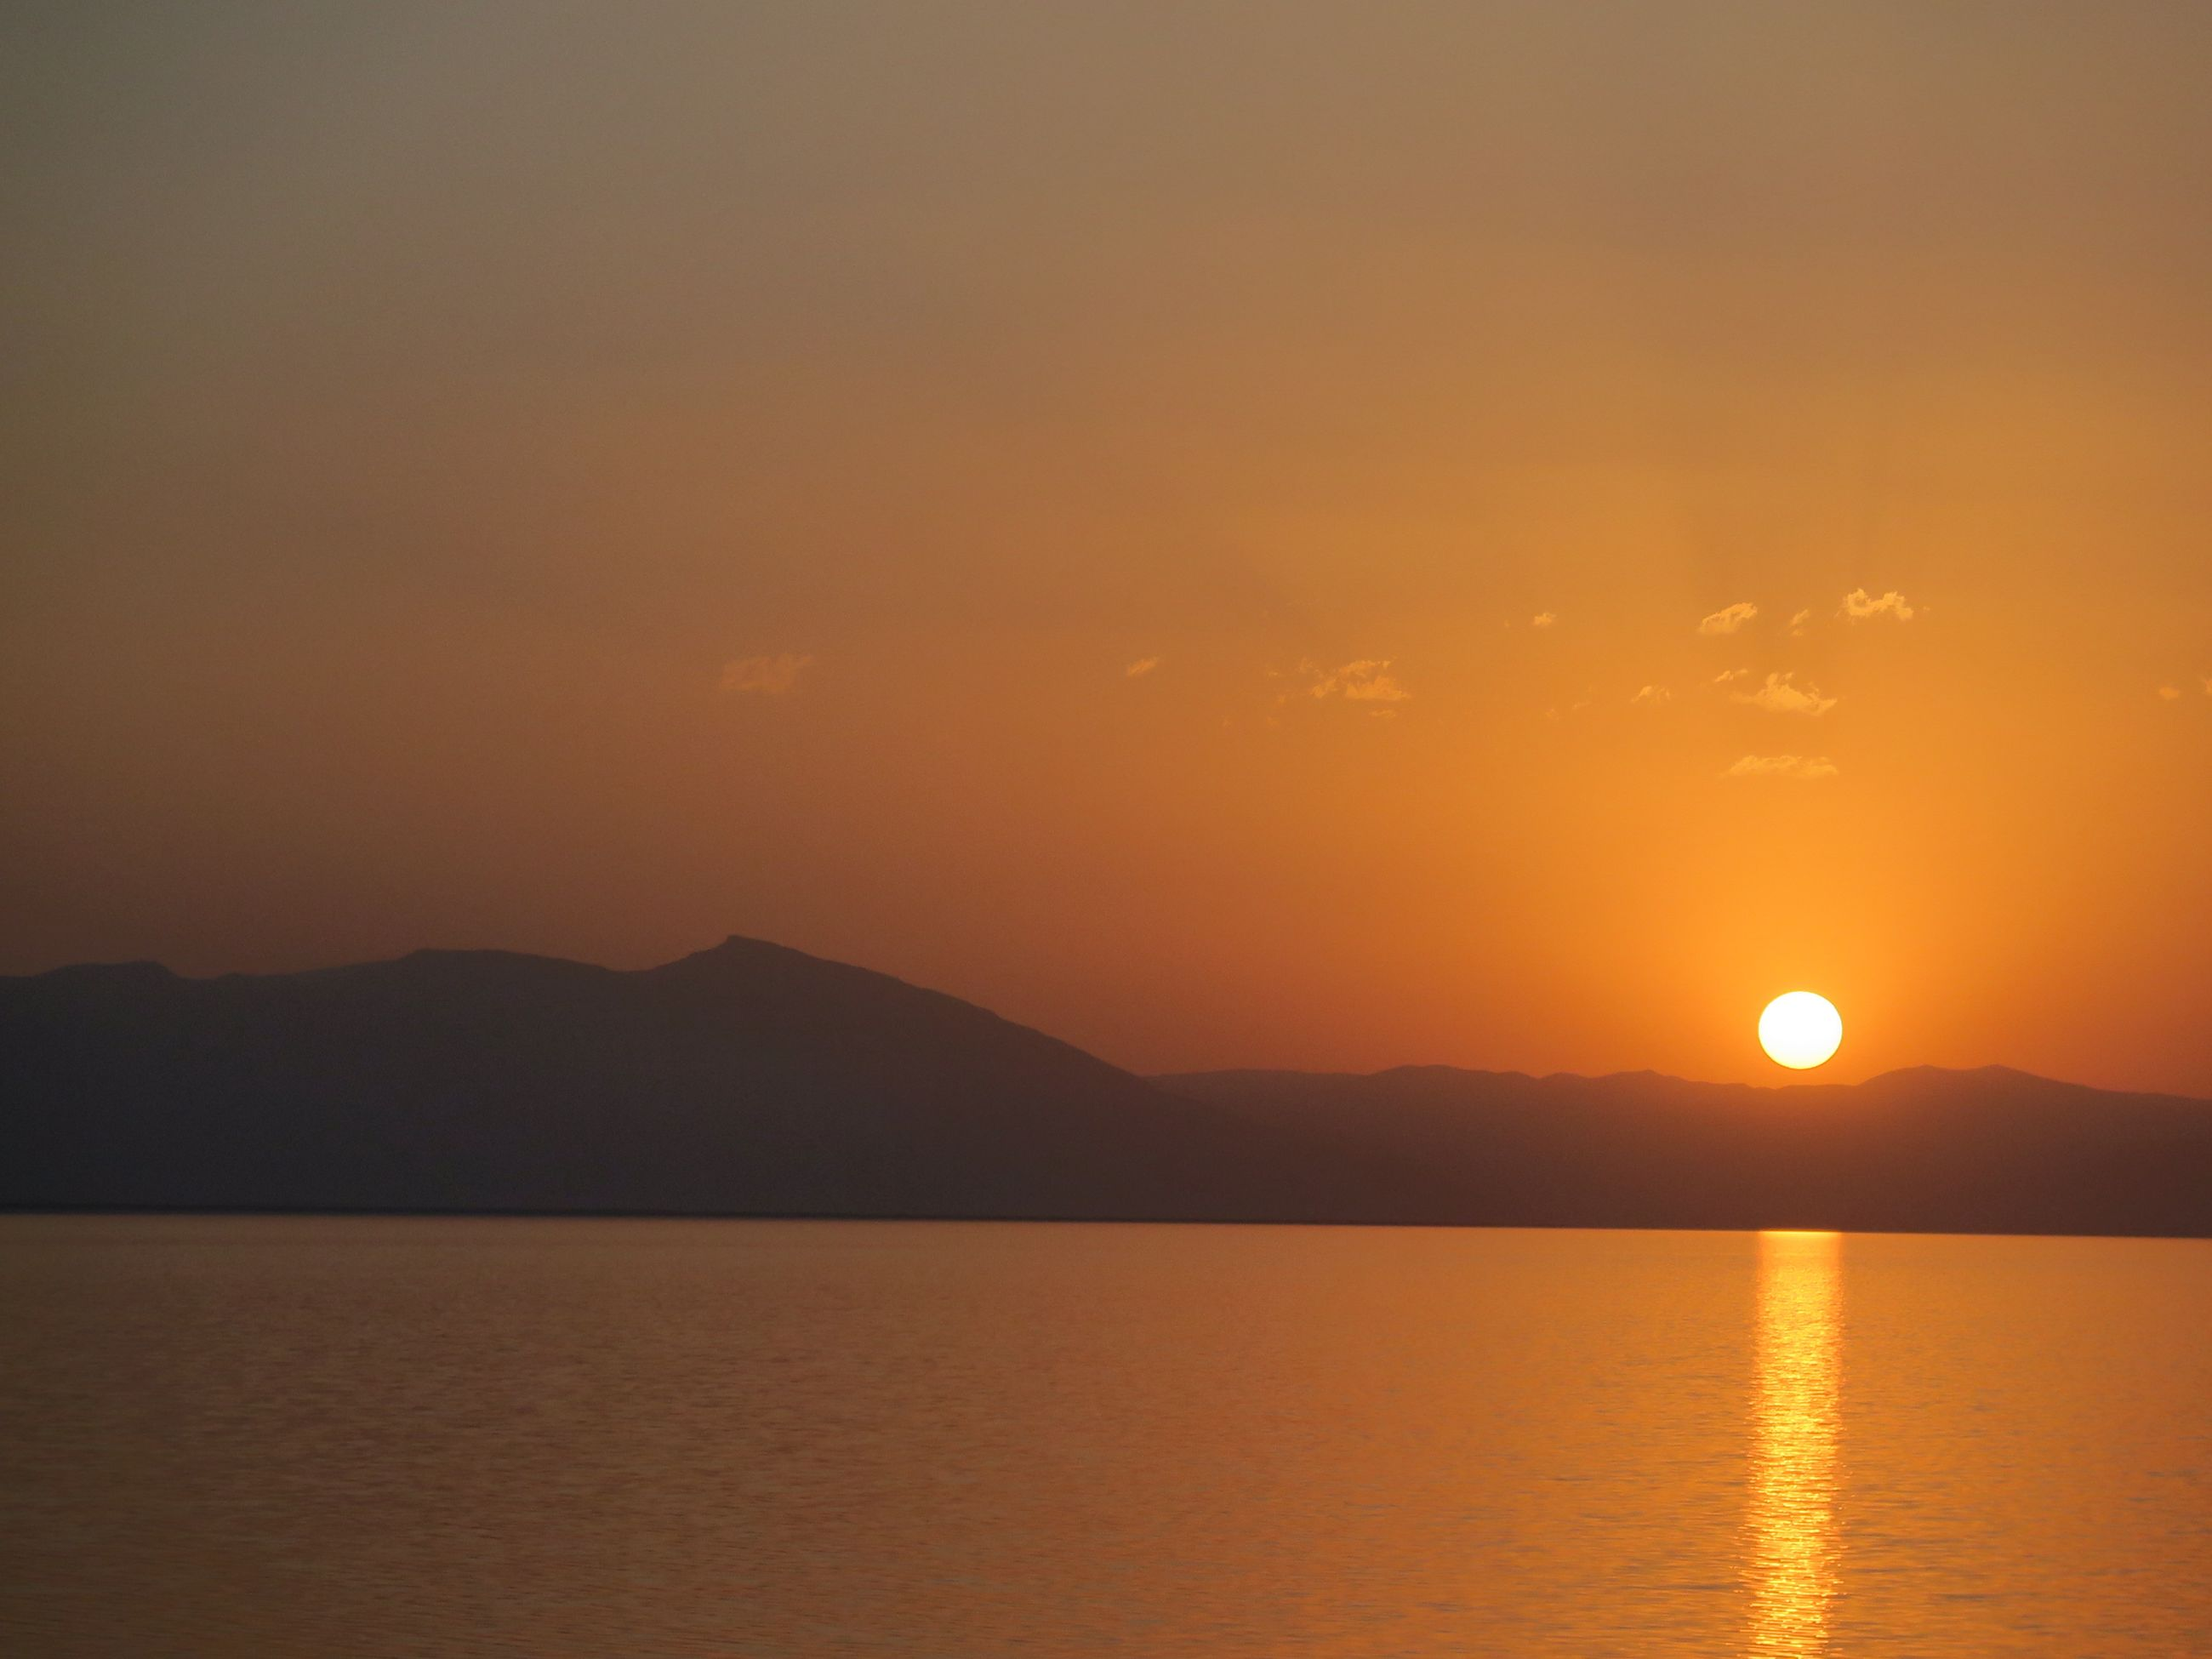 sunset, orange color, scenics, mountain, tranquility, tranquil scene, sun, nature, beauty in nature, silhouette, water, sky, no people, idyllic, reflection, waterfront, sea, mountain range, outdoors, landscape